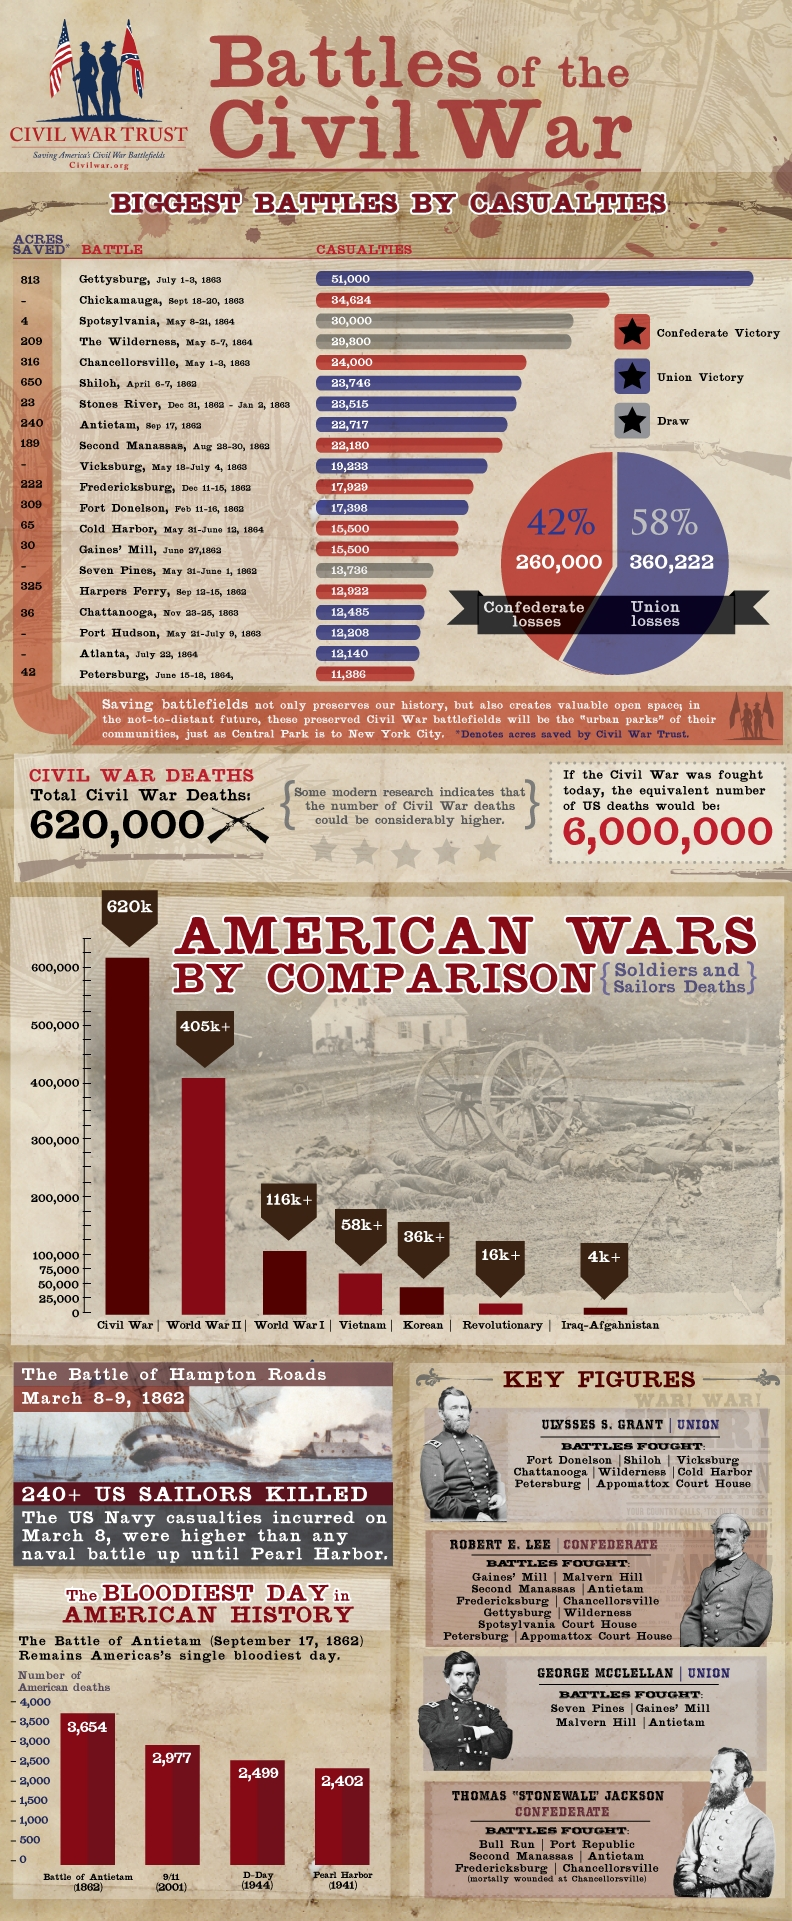 Civil War Casualties, Fatalities & Statistics.jpg